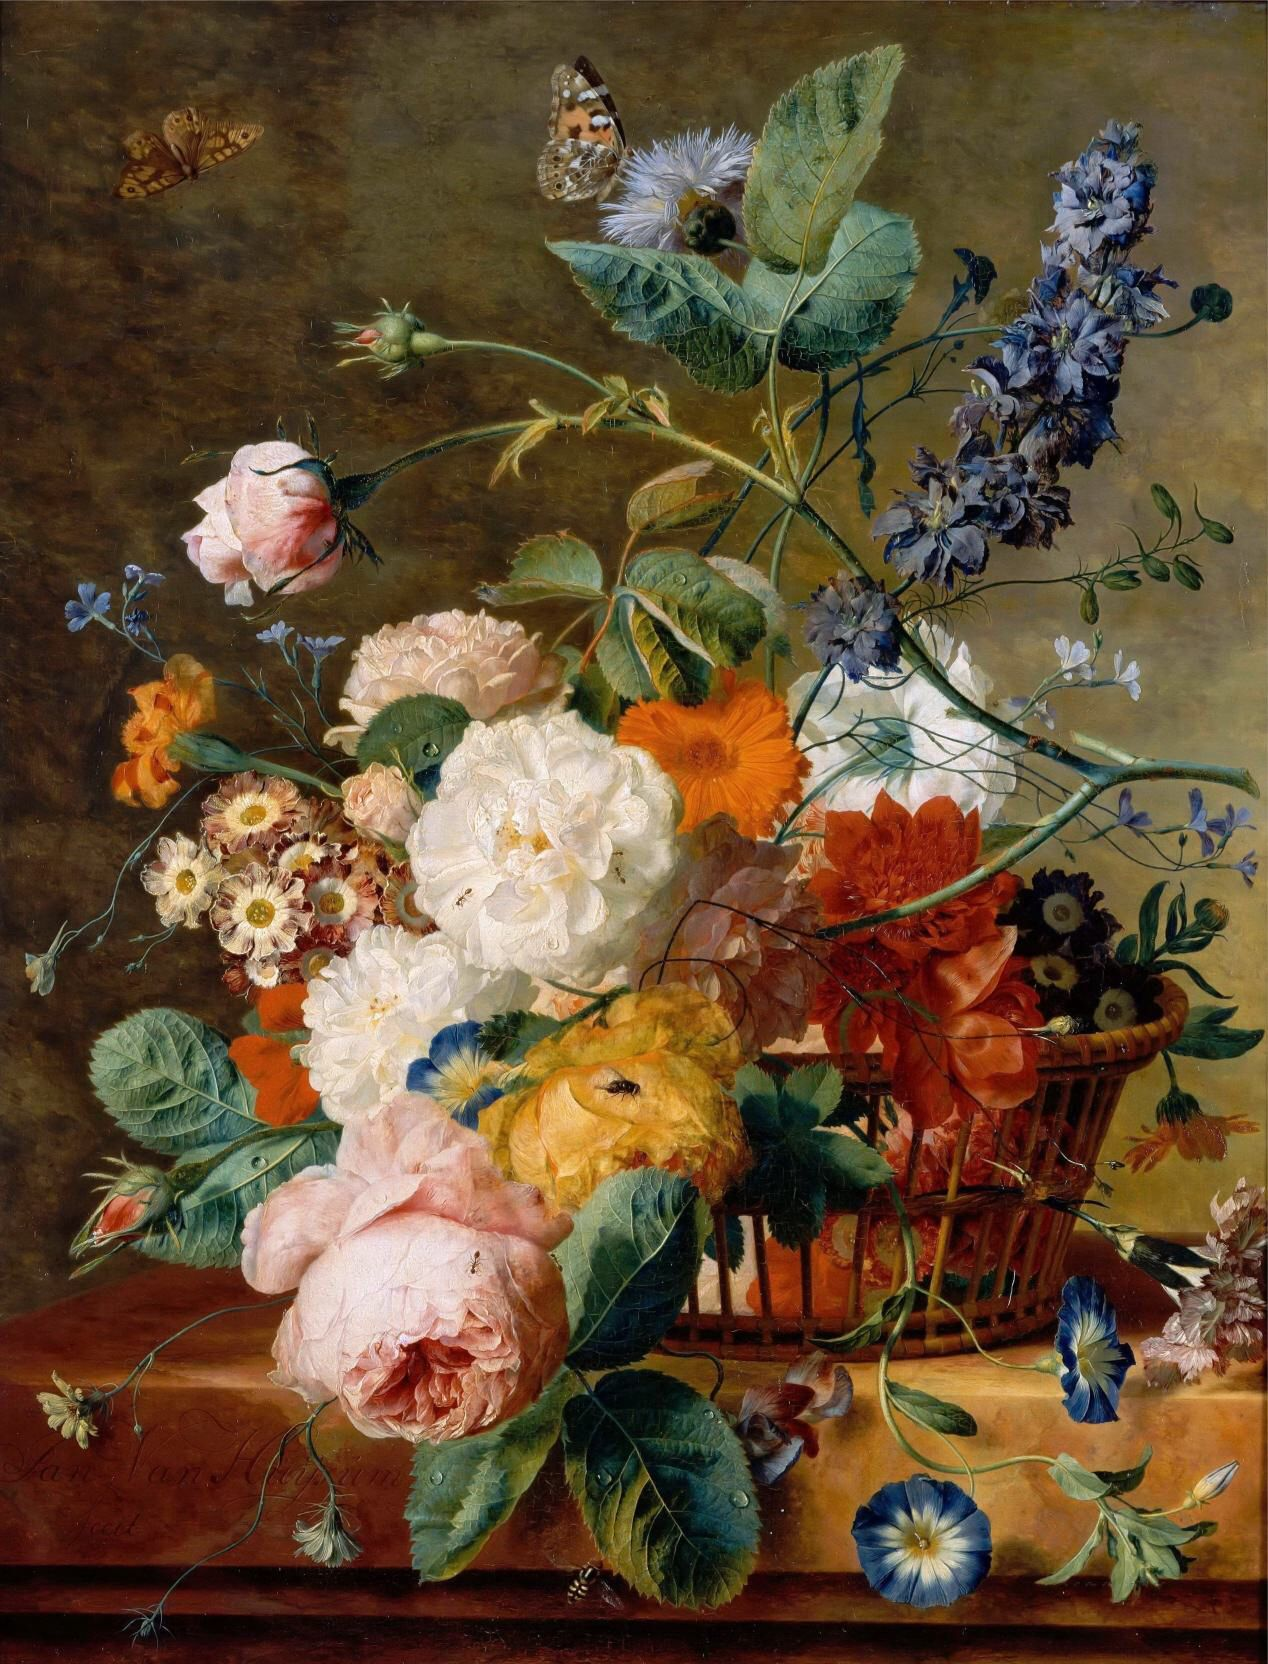 Jan Van Huysum - Basket of Flowers with Butterflies